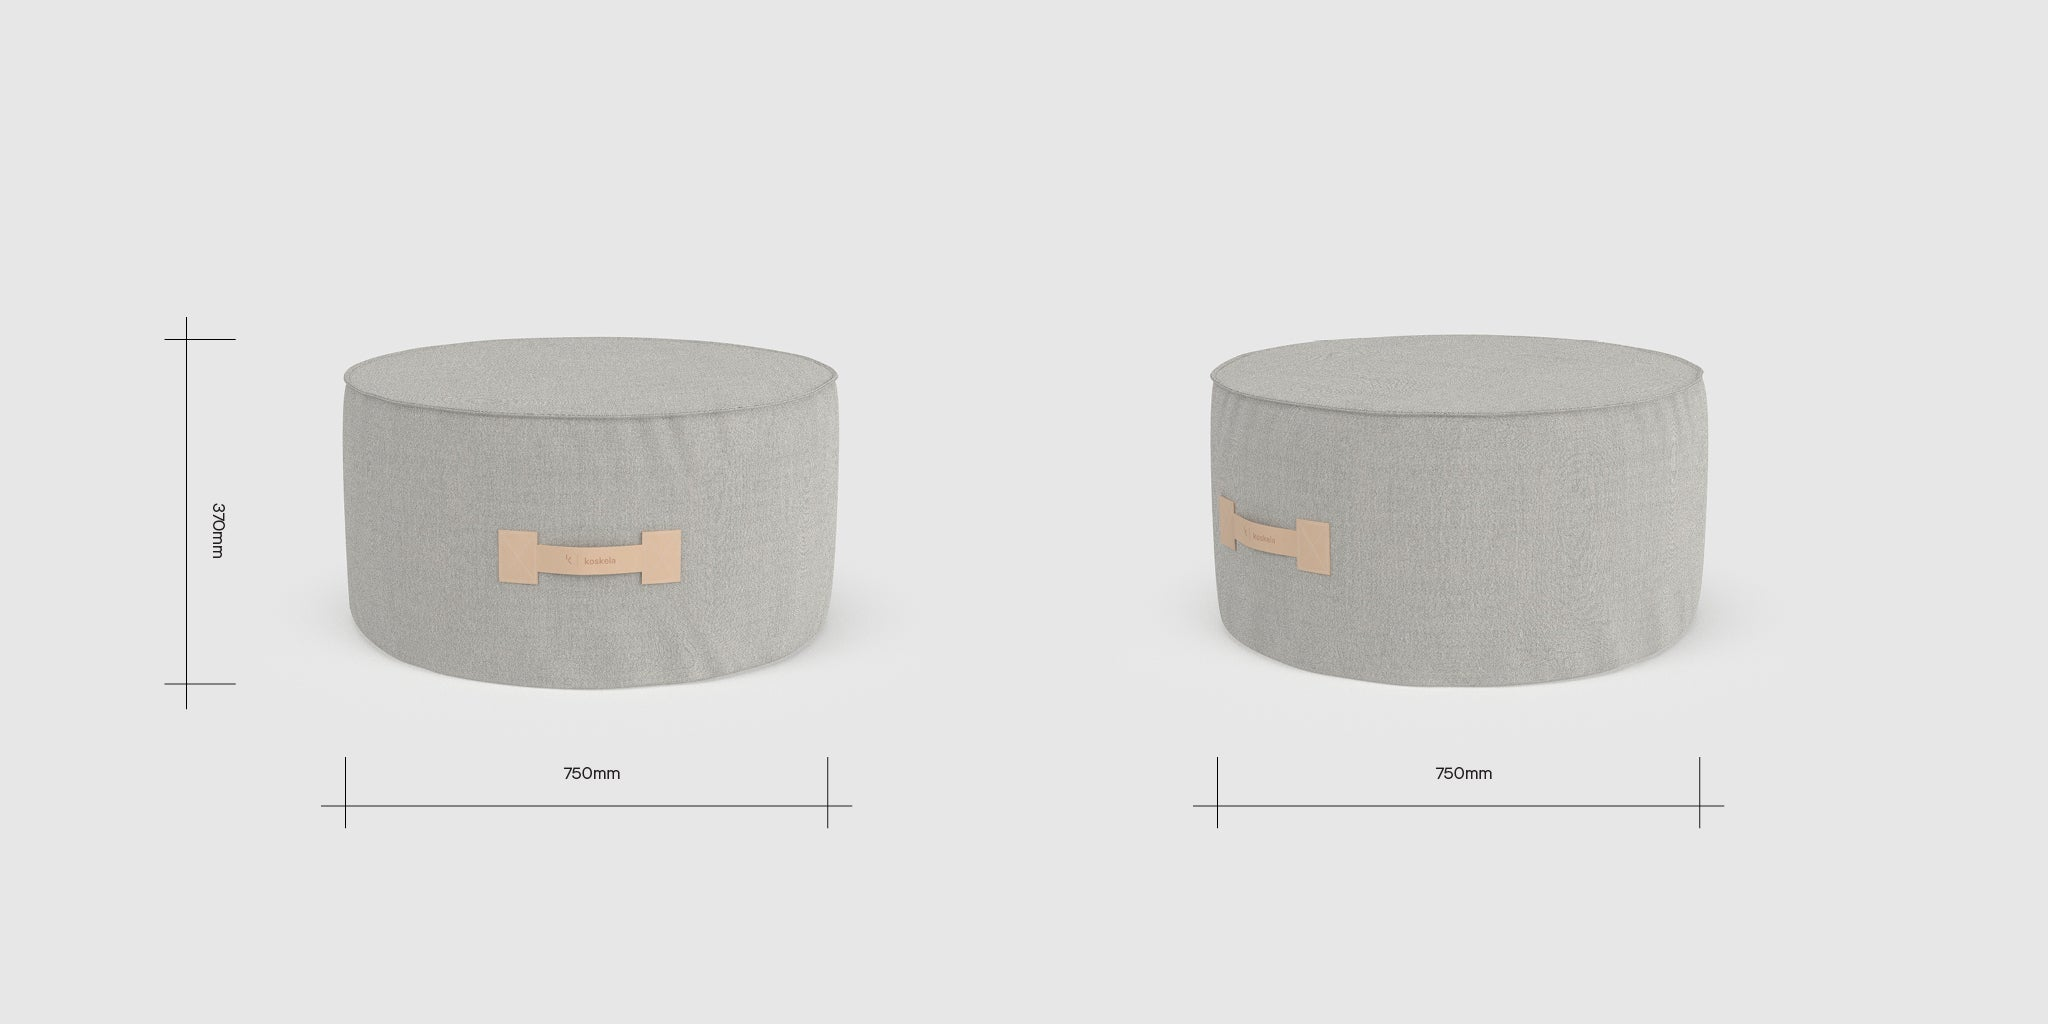 Quadrant Soft Curved Ottoman Dimensions